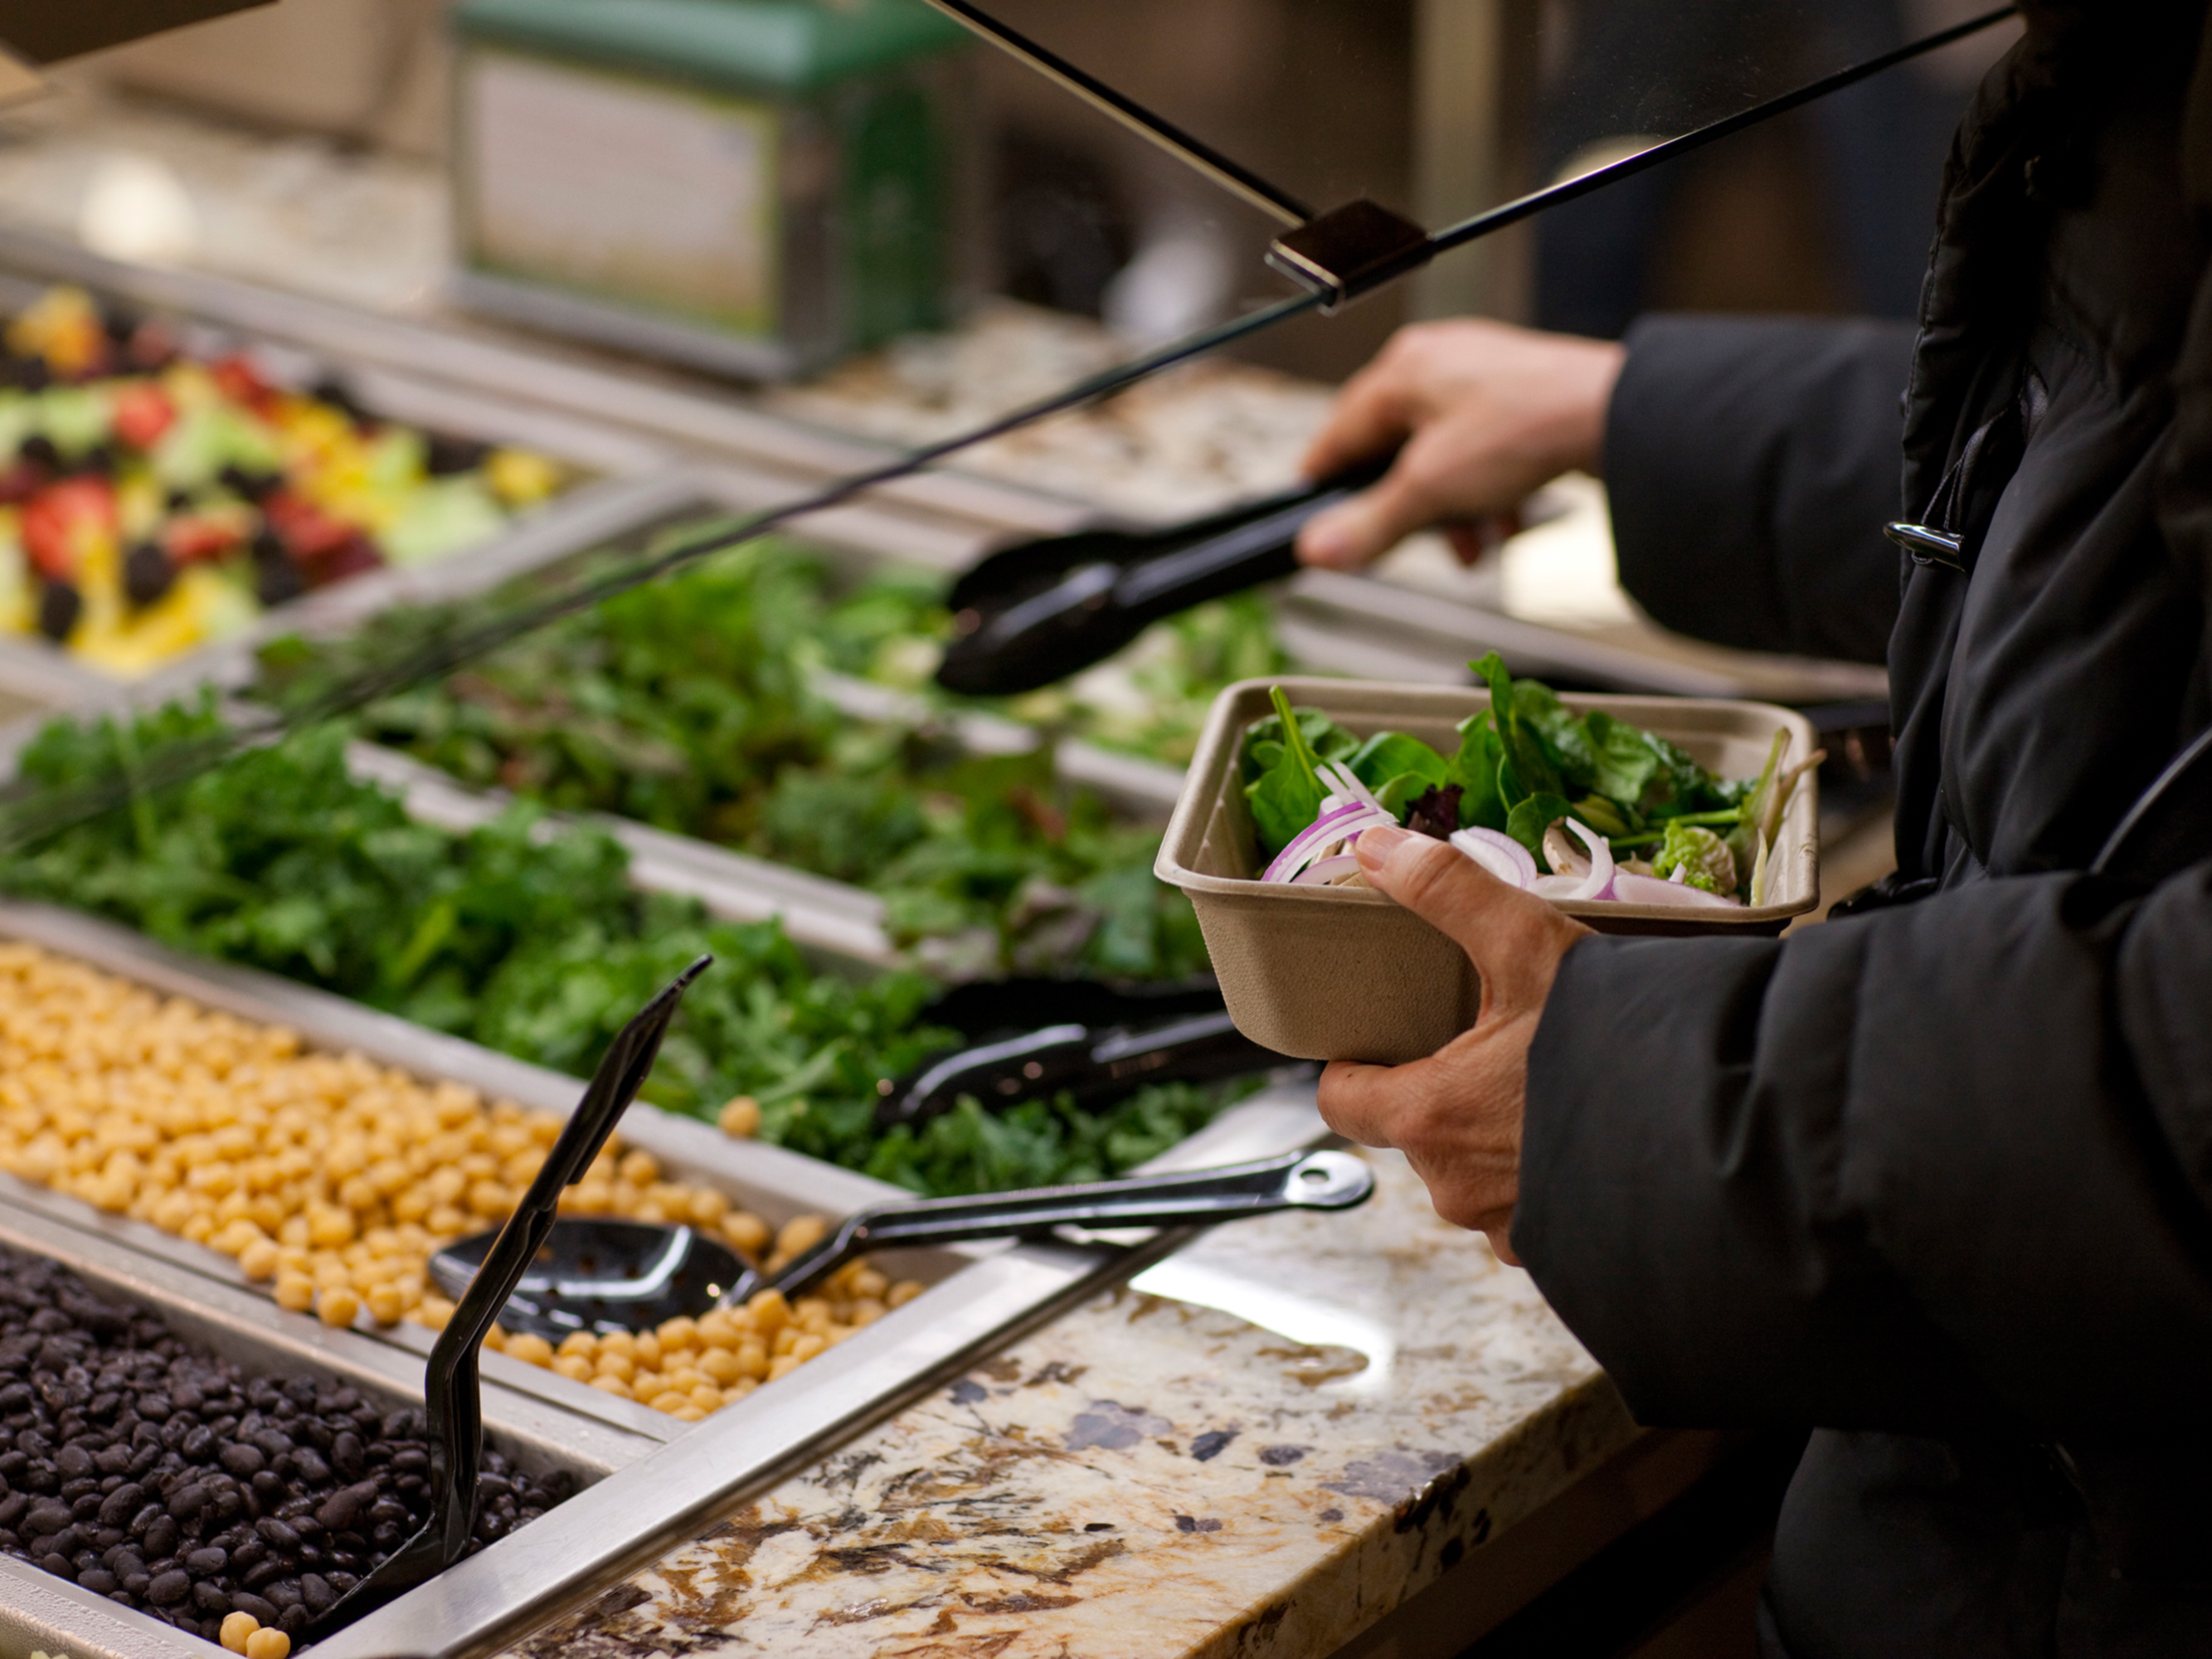 10 Whole Foods Salad Bar Hacks That Won't Break the Bank